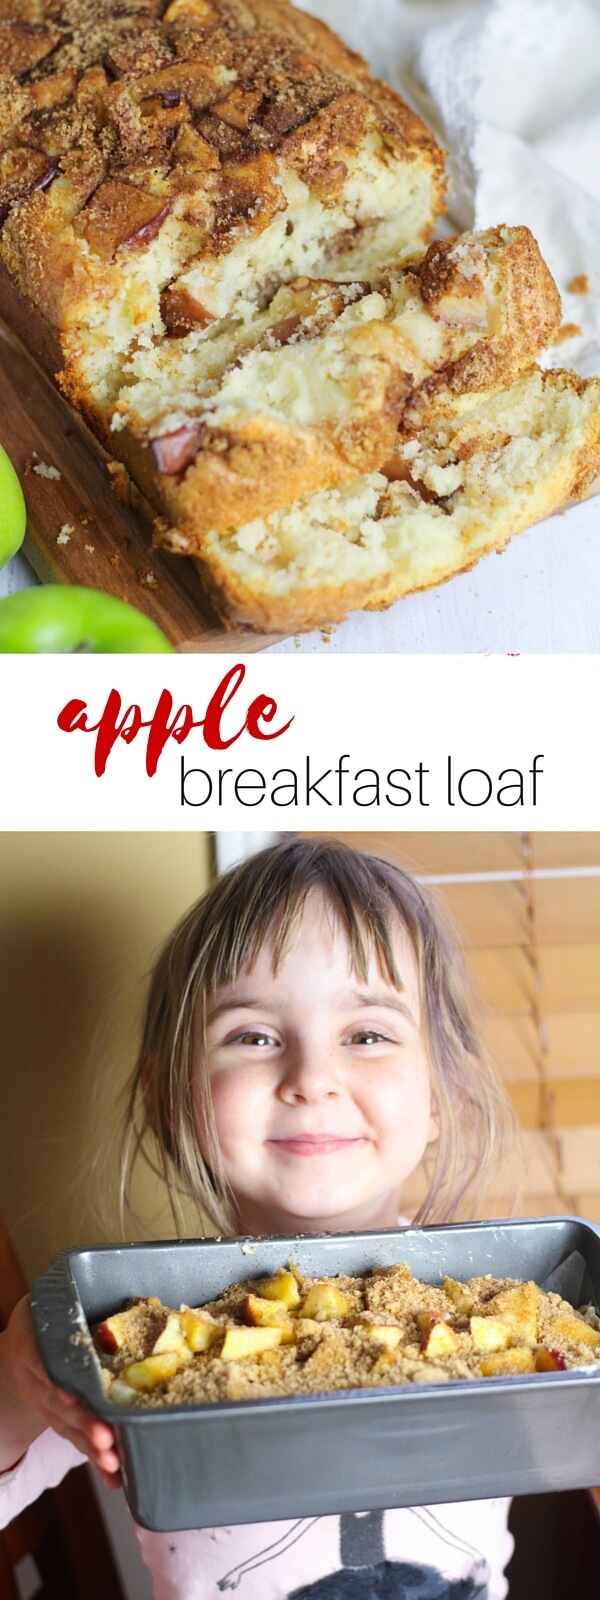 he apple breakfast loaf recipe is the perfect recipe for kids to help with in the kitchen! Tender, cake-like bread with cinnamon-brown sugar and real chunks of apple mixed in - the perfect way to start your day.